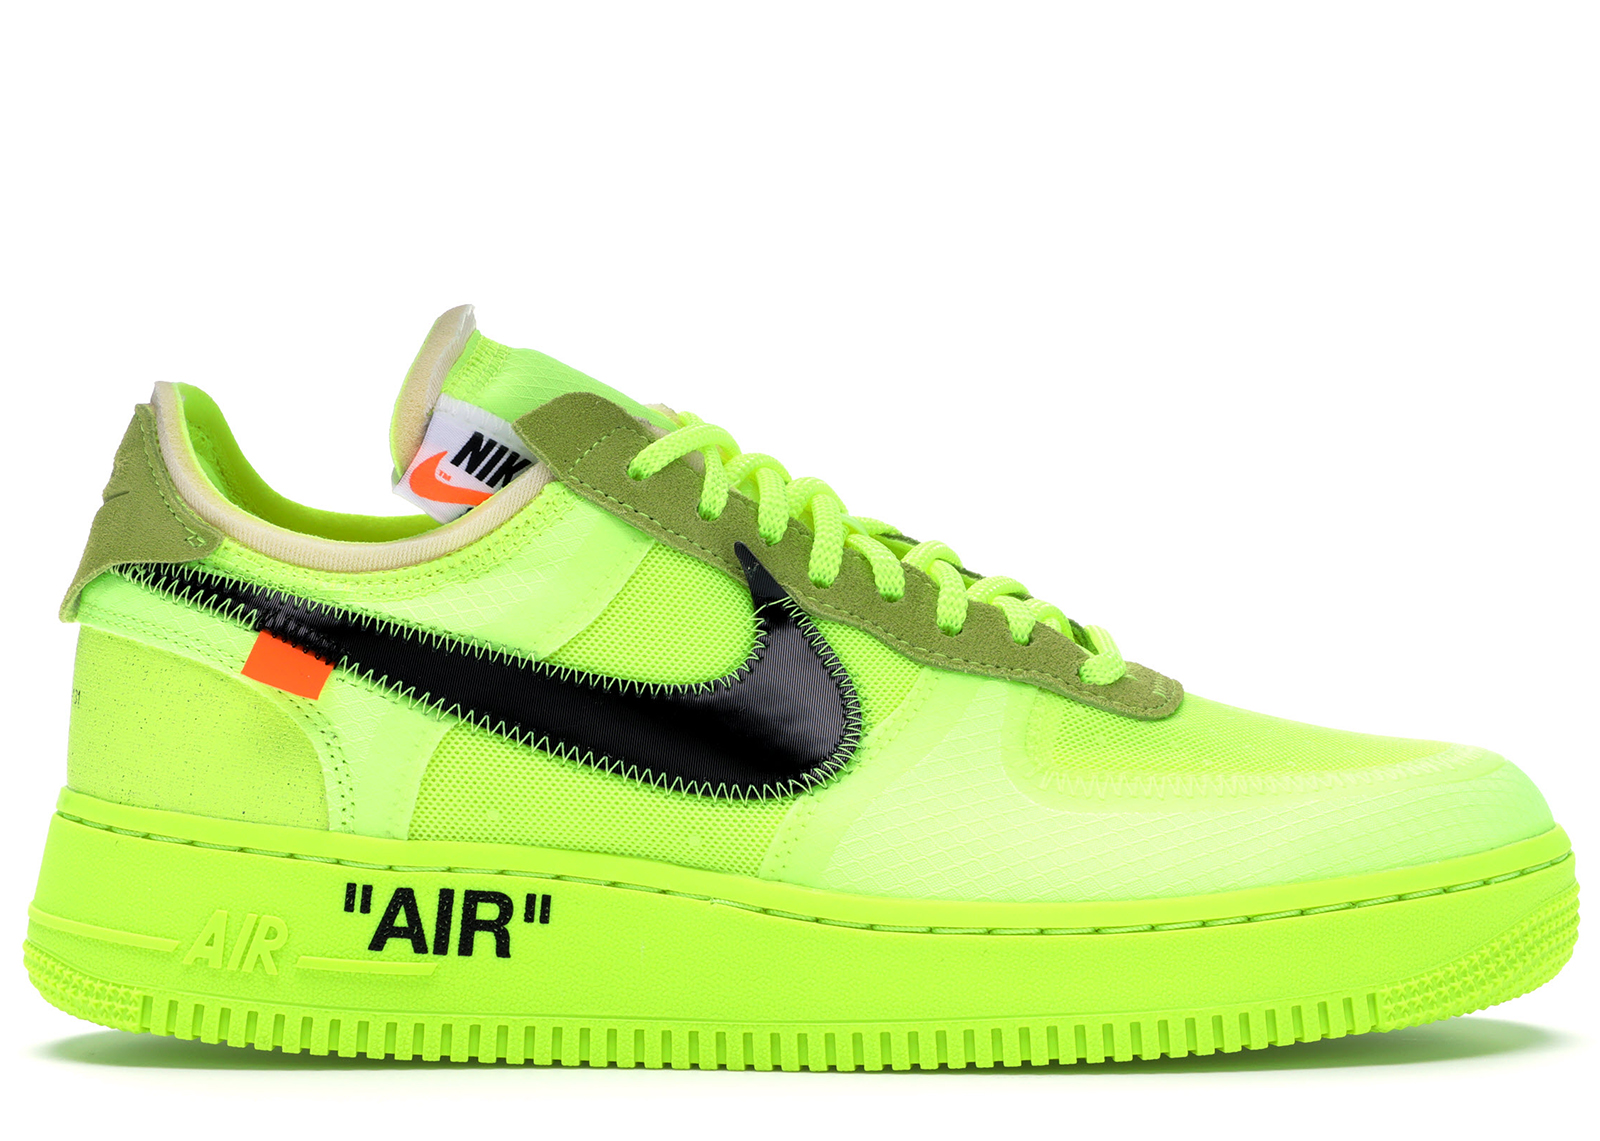 Details about DS Off White x Nike Air Force 1 Low